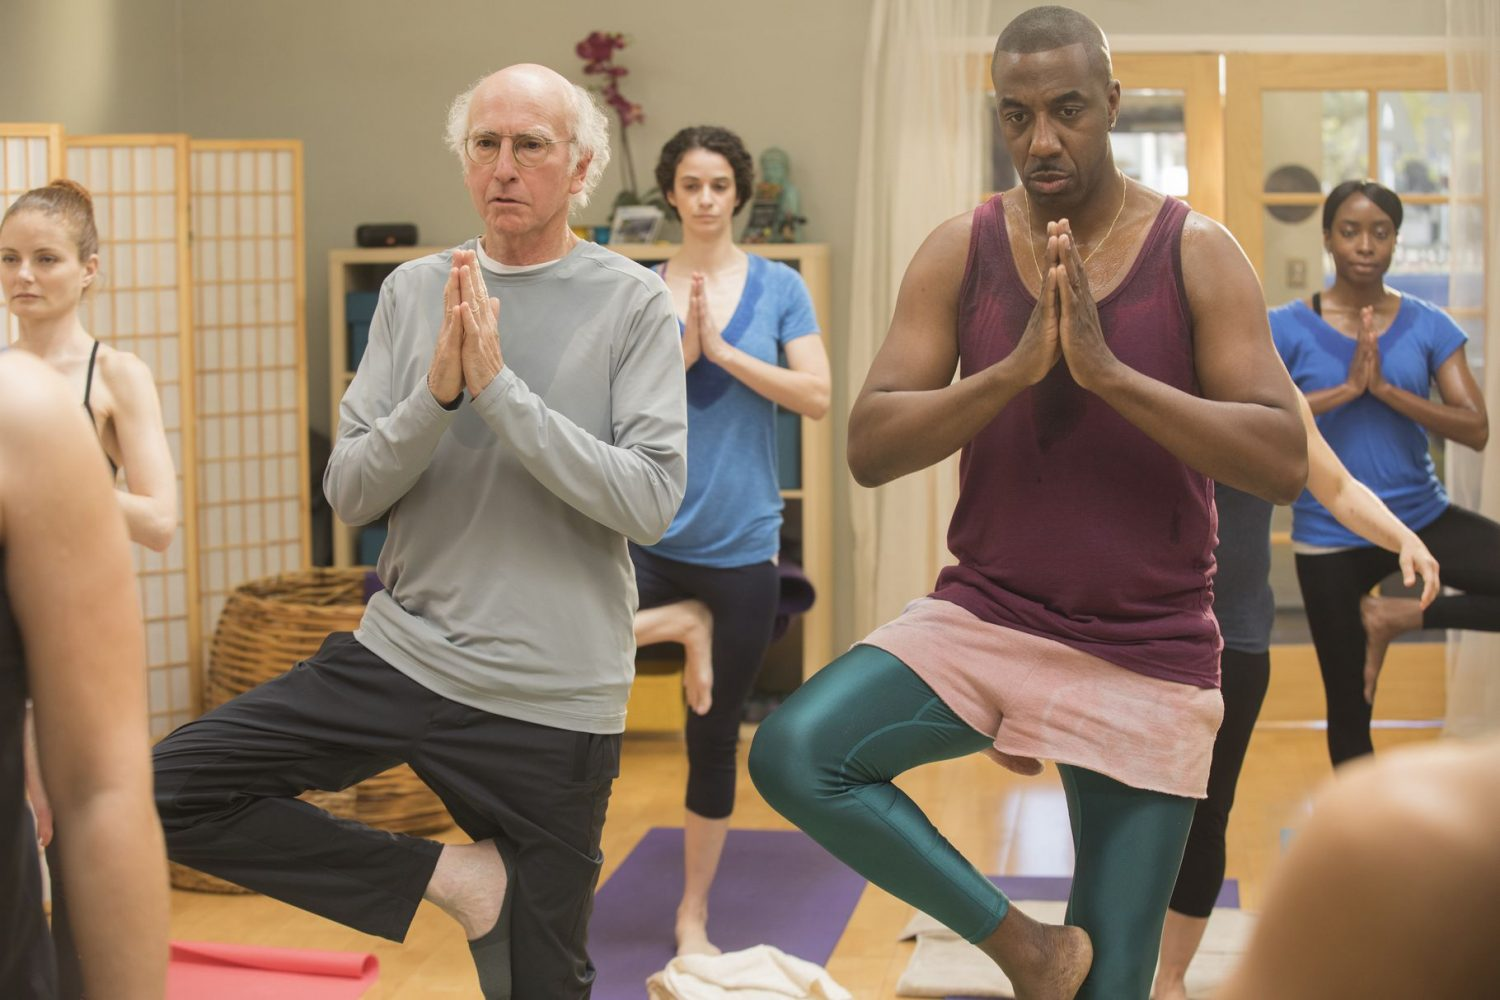 Yoga For Men? 5 Reasons Why You Should Go With The Flow